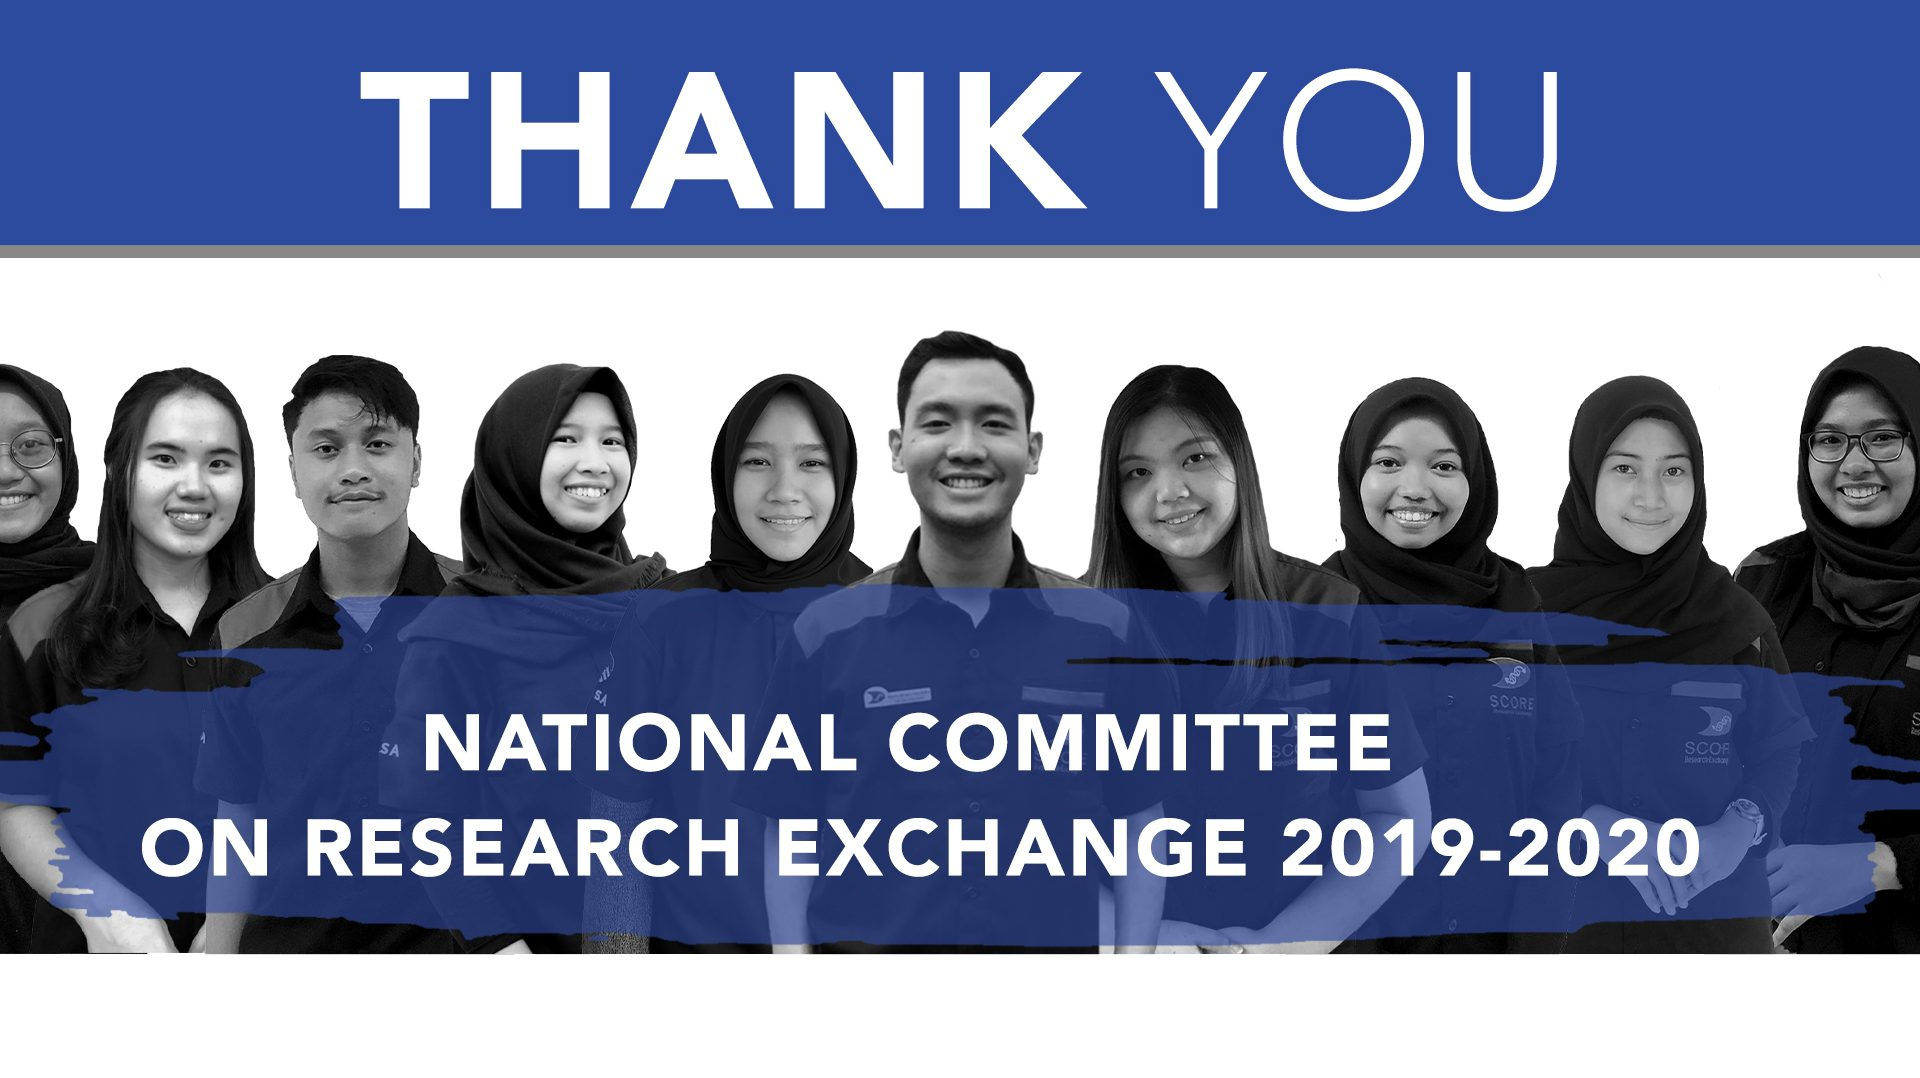 THANK YOU NCRE 2019/2020